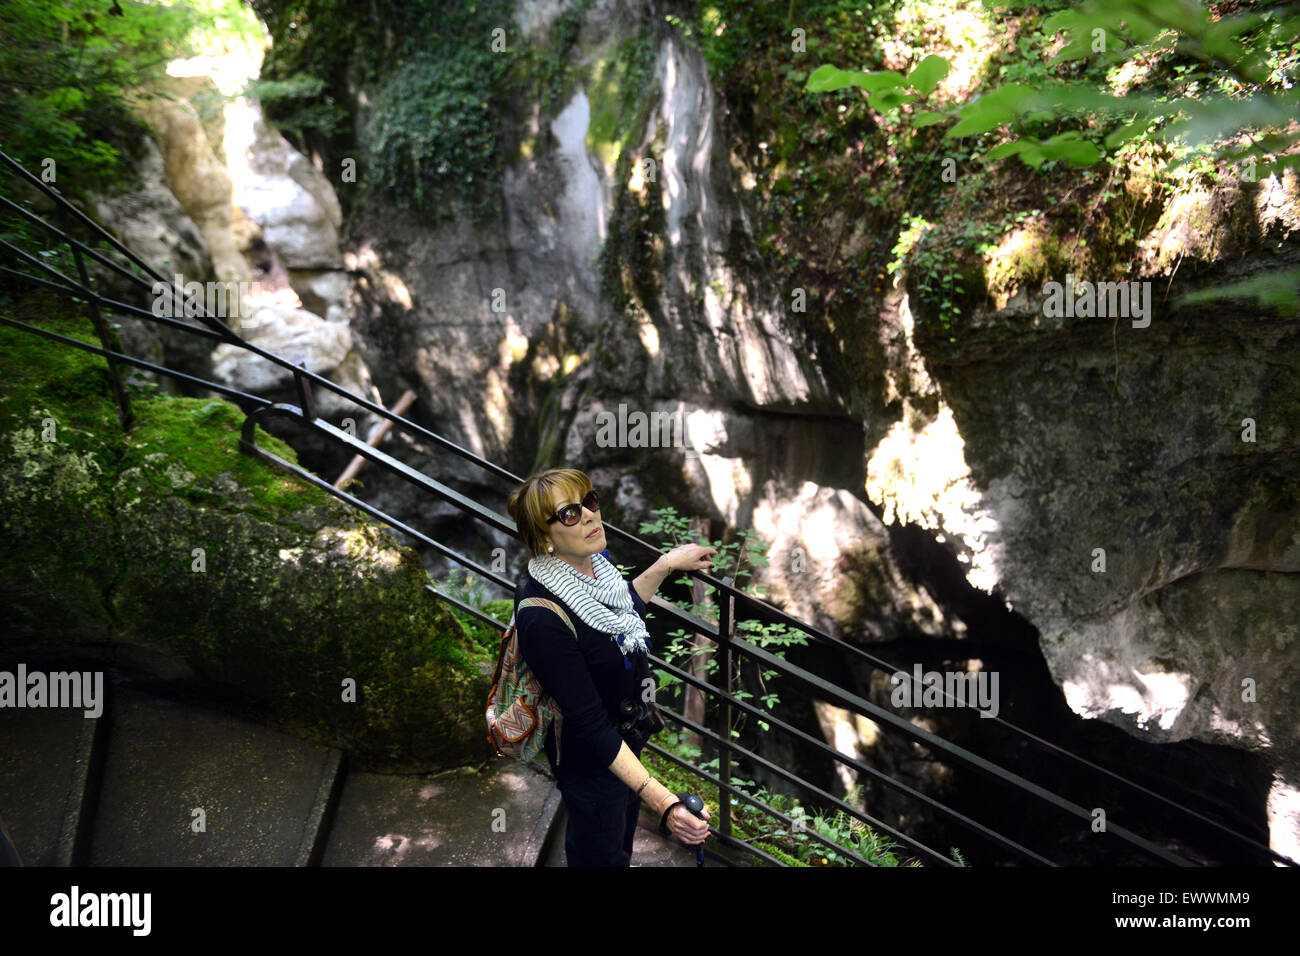 The Gorges du Fier in Haute-Savoie region of France - Stock Image